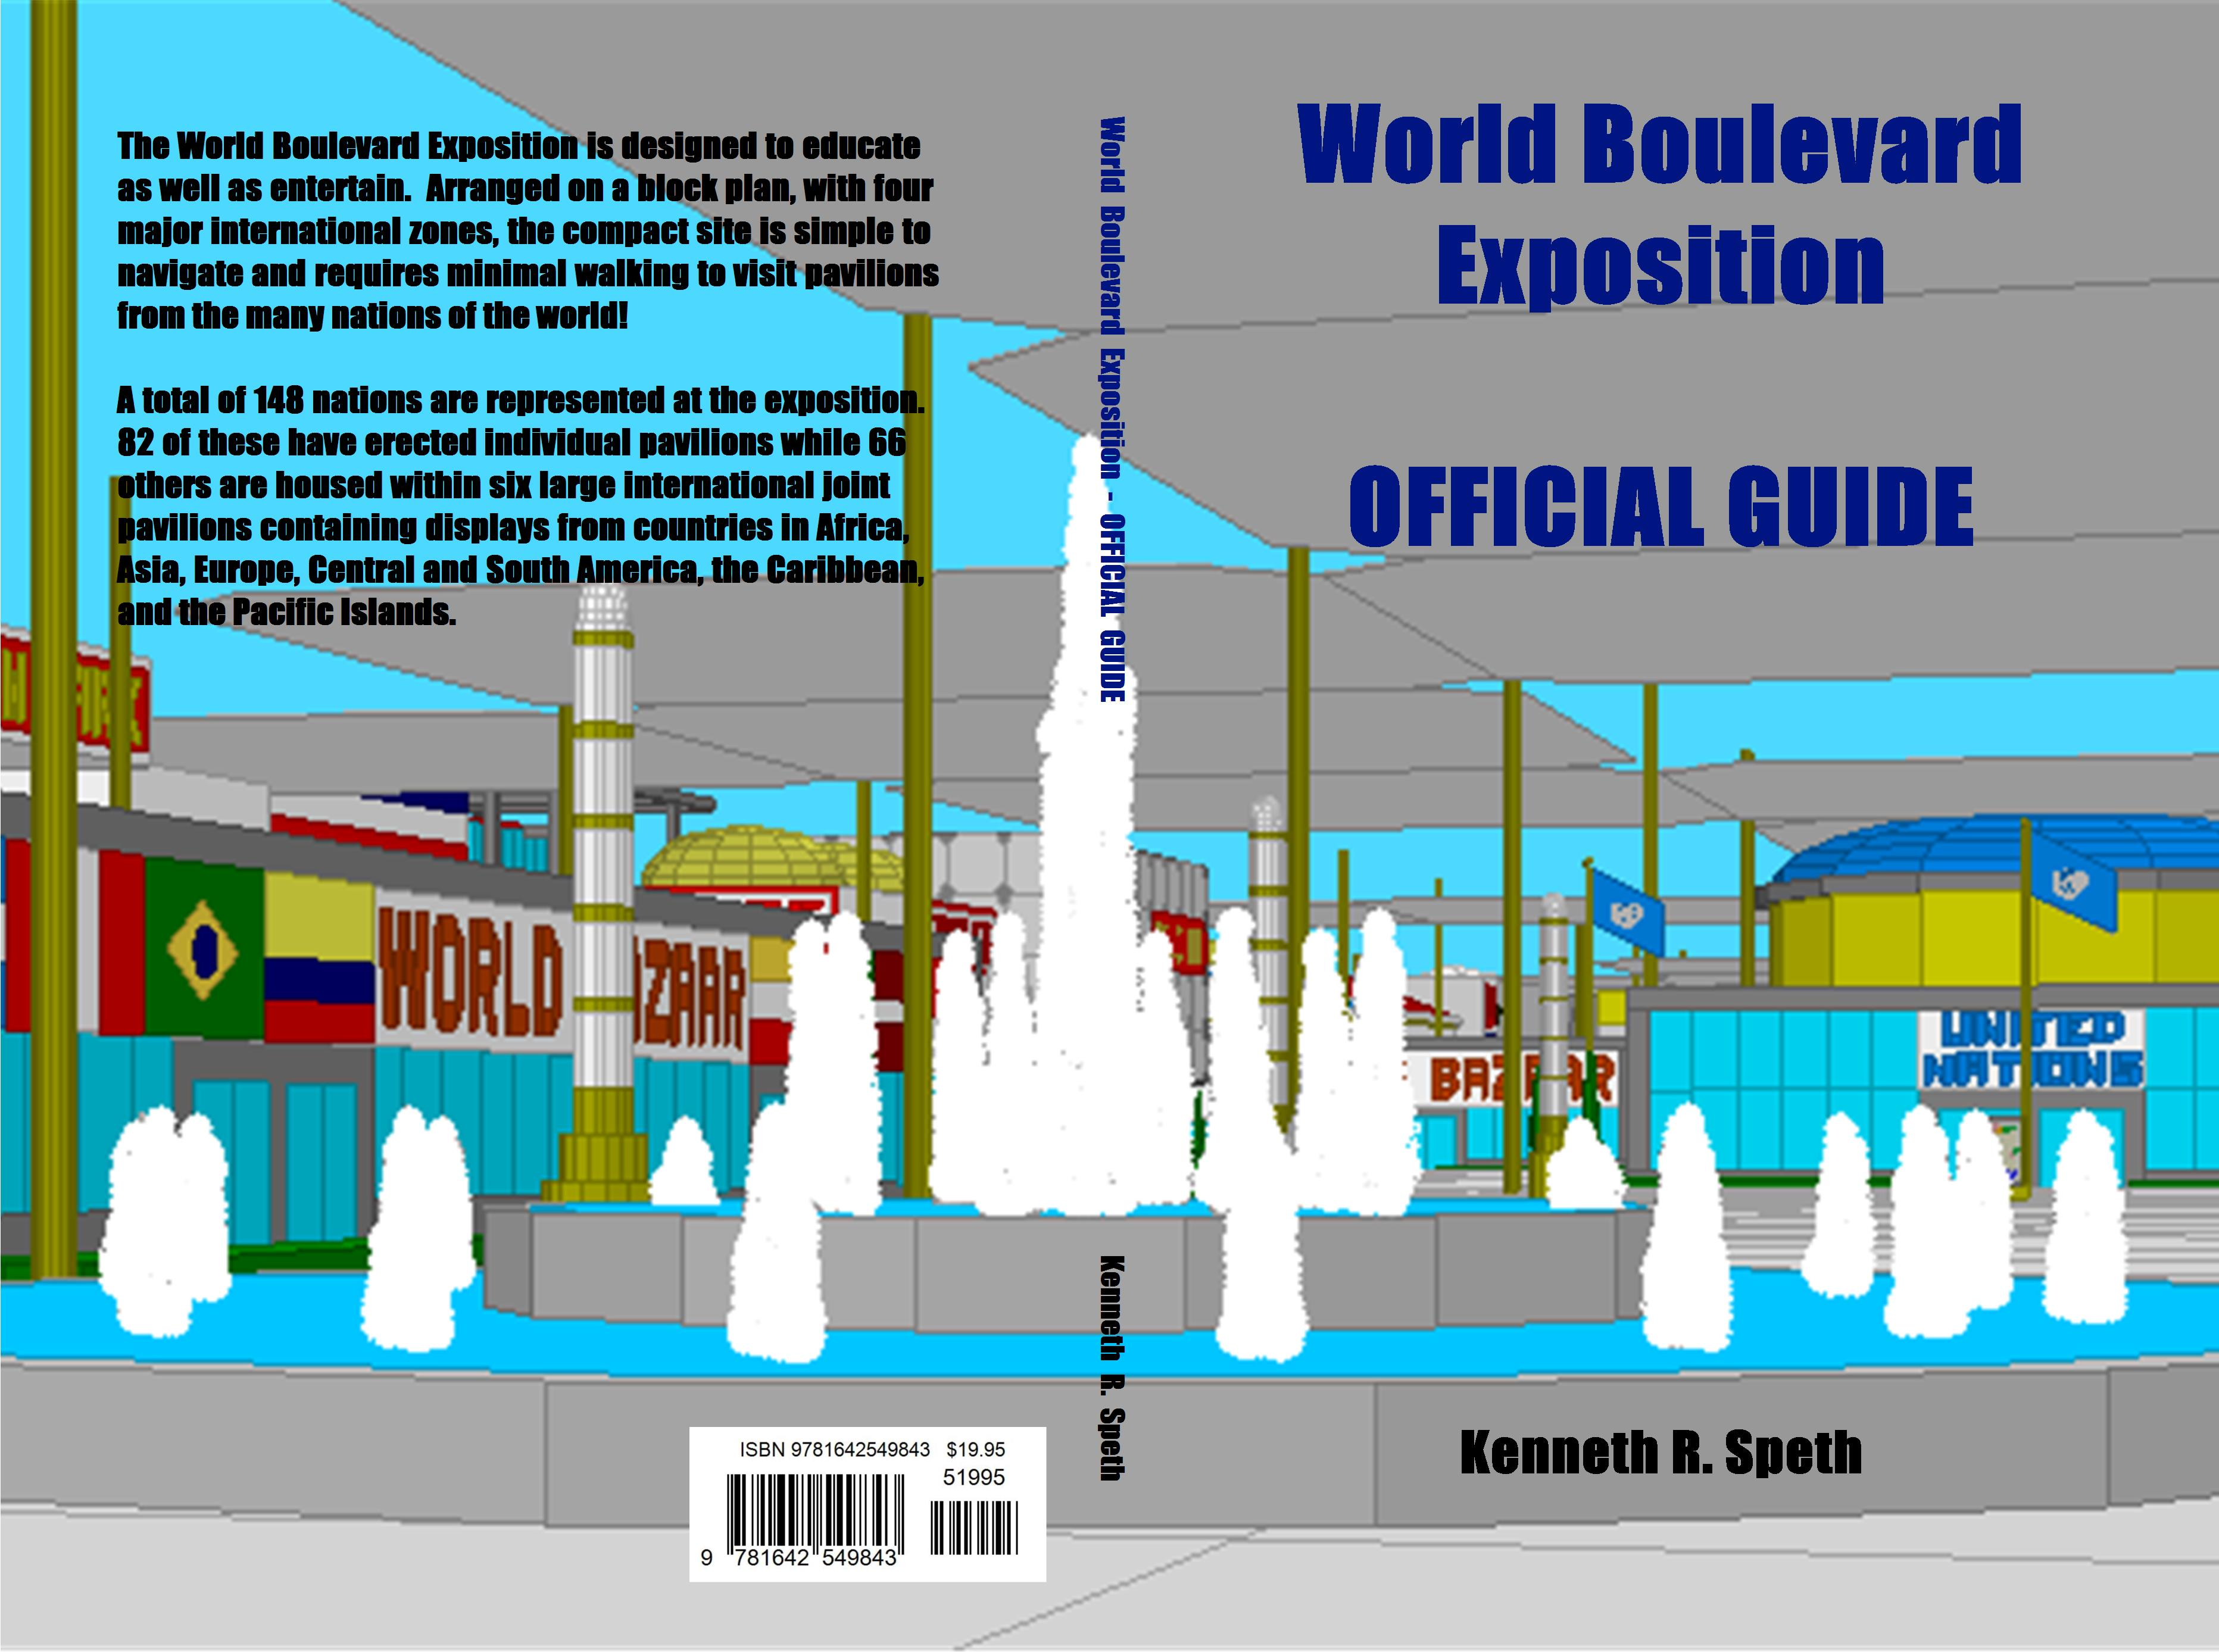 World Boulevard Exposition OFFICIAL GUIDE cover image